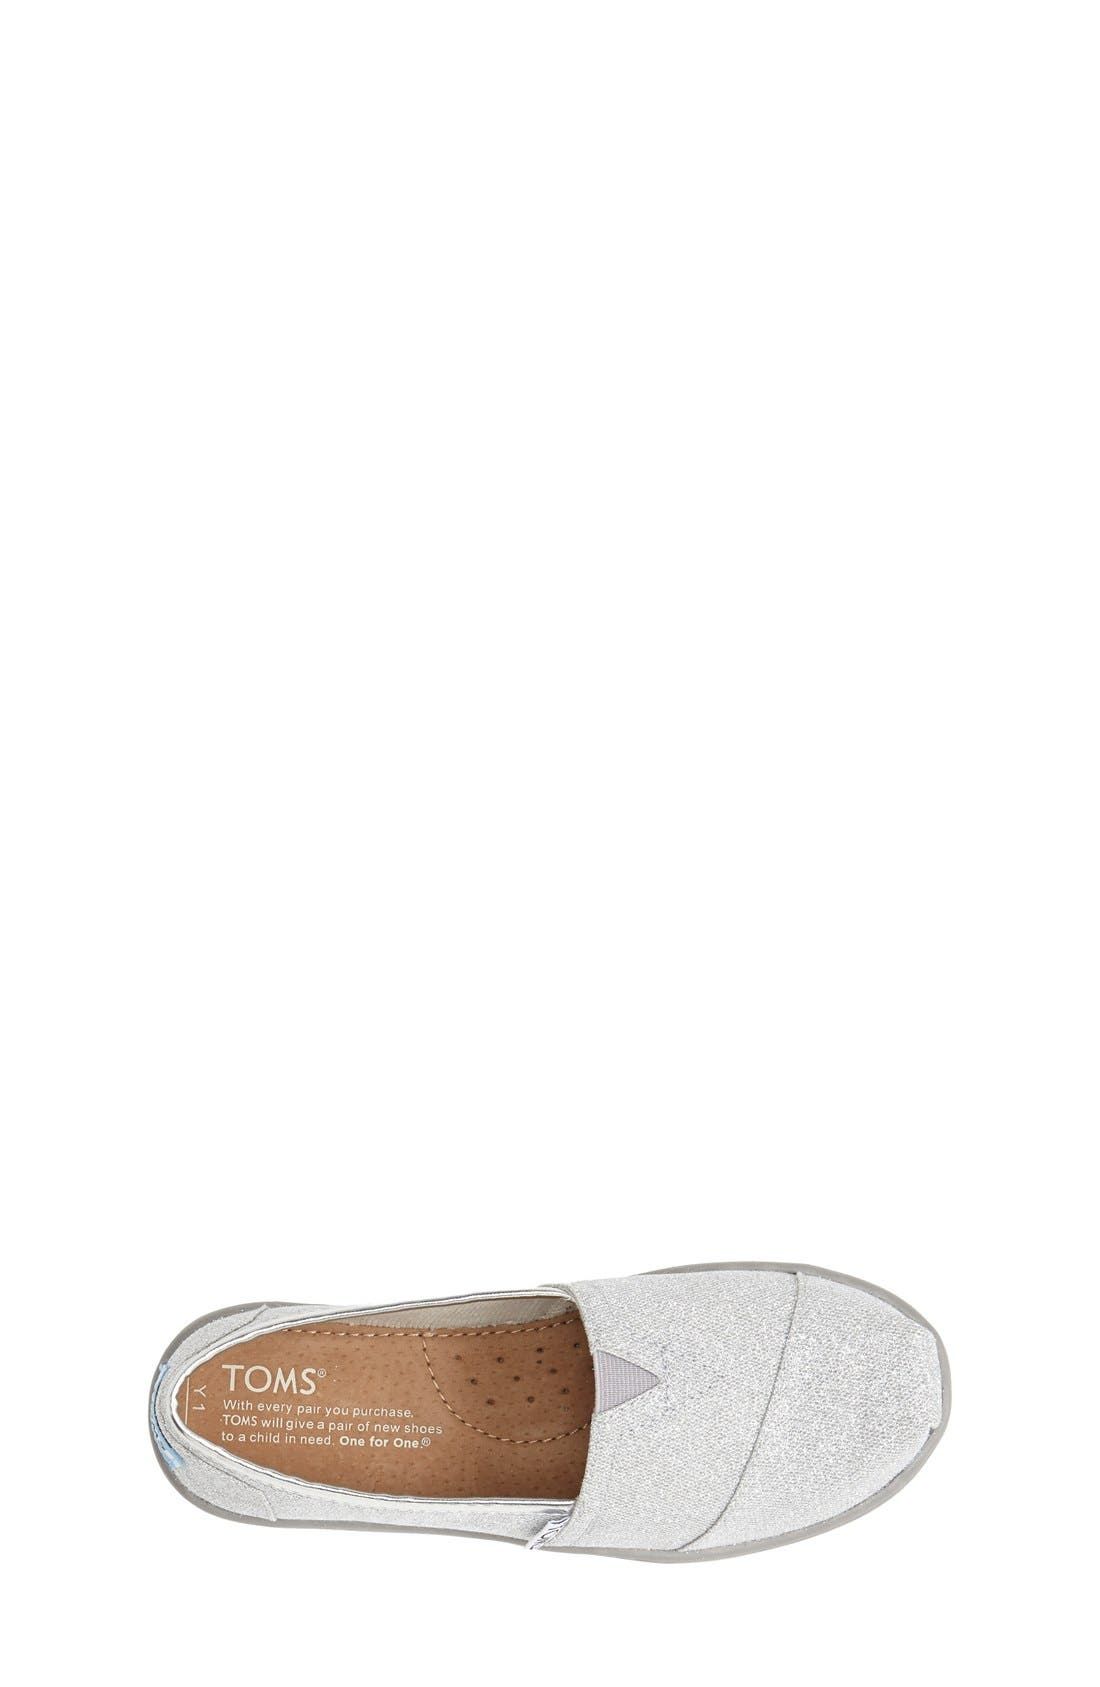 Alternate Image 3  - TOMS 'Classic Youth - Glitter' Slip-On (Toddler, Little Kid & Big Kid)